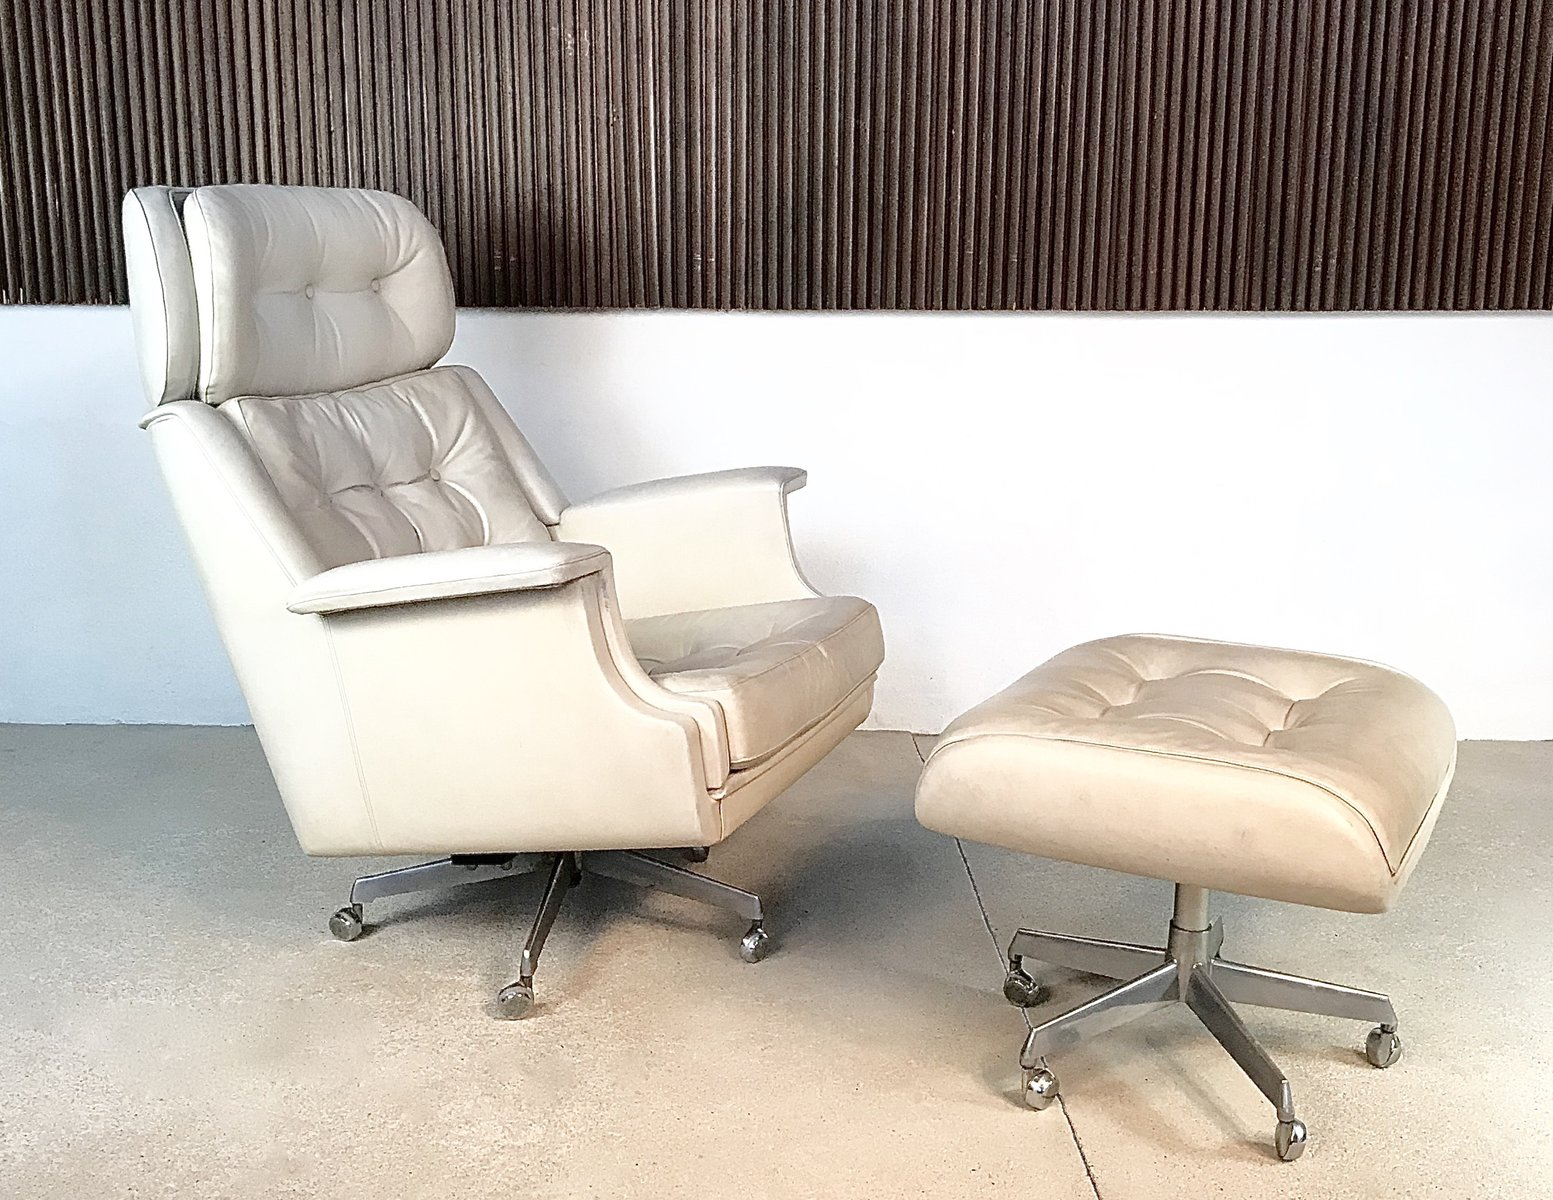 tufted chair and ottoman feet for chairs leather lounge 1960s sale at pamono